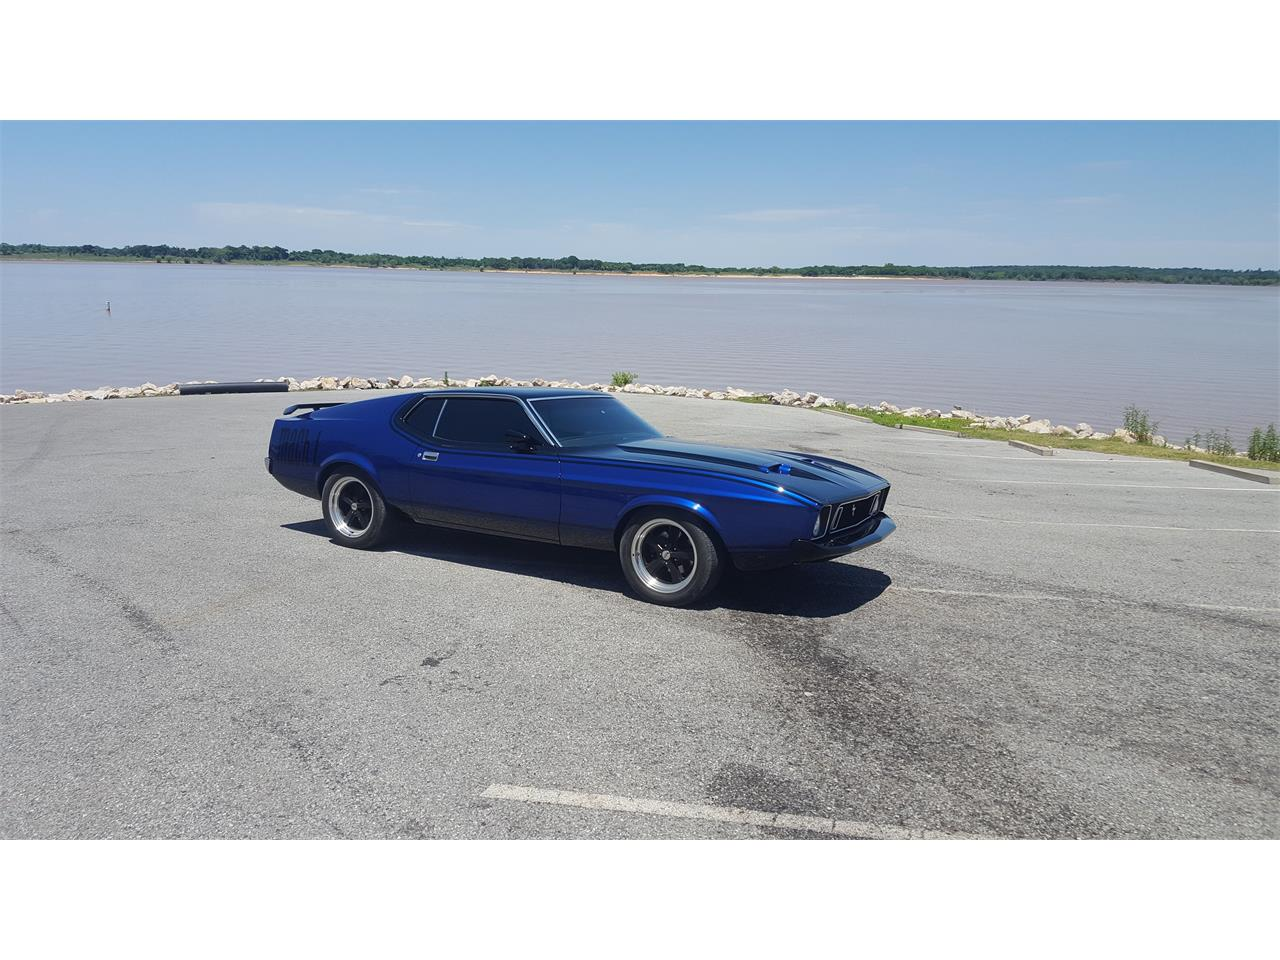 Large Picture of Classic 1973 Ford Mustang Mach 1 located in Gordonville Texas Offered by a Private Seller - LBYV